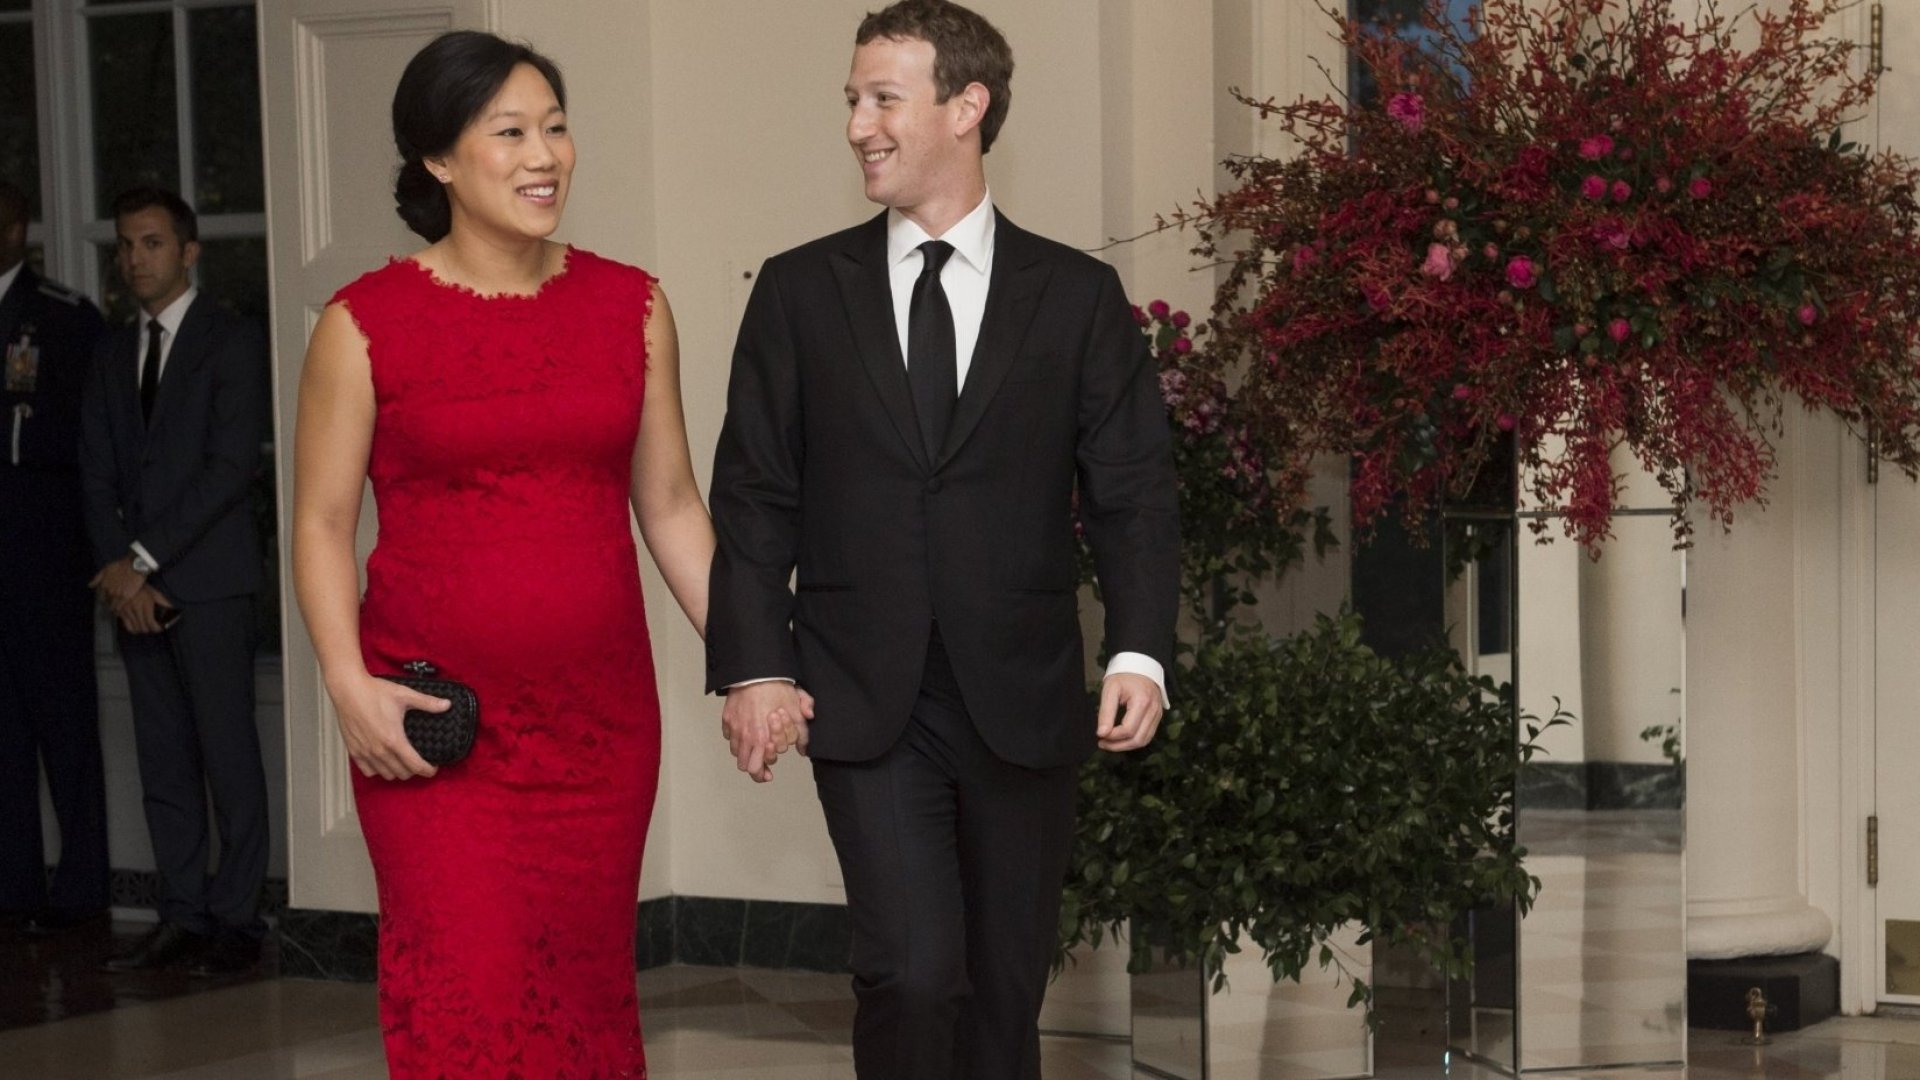 Mark Zuckerberg's $45 Billion Pledge, and 9 Other Whopping Donations Made by Business Executives